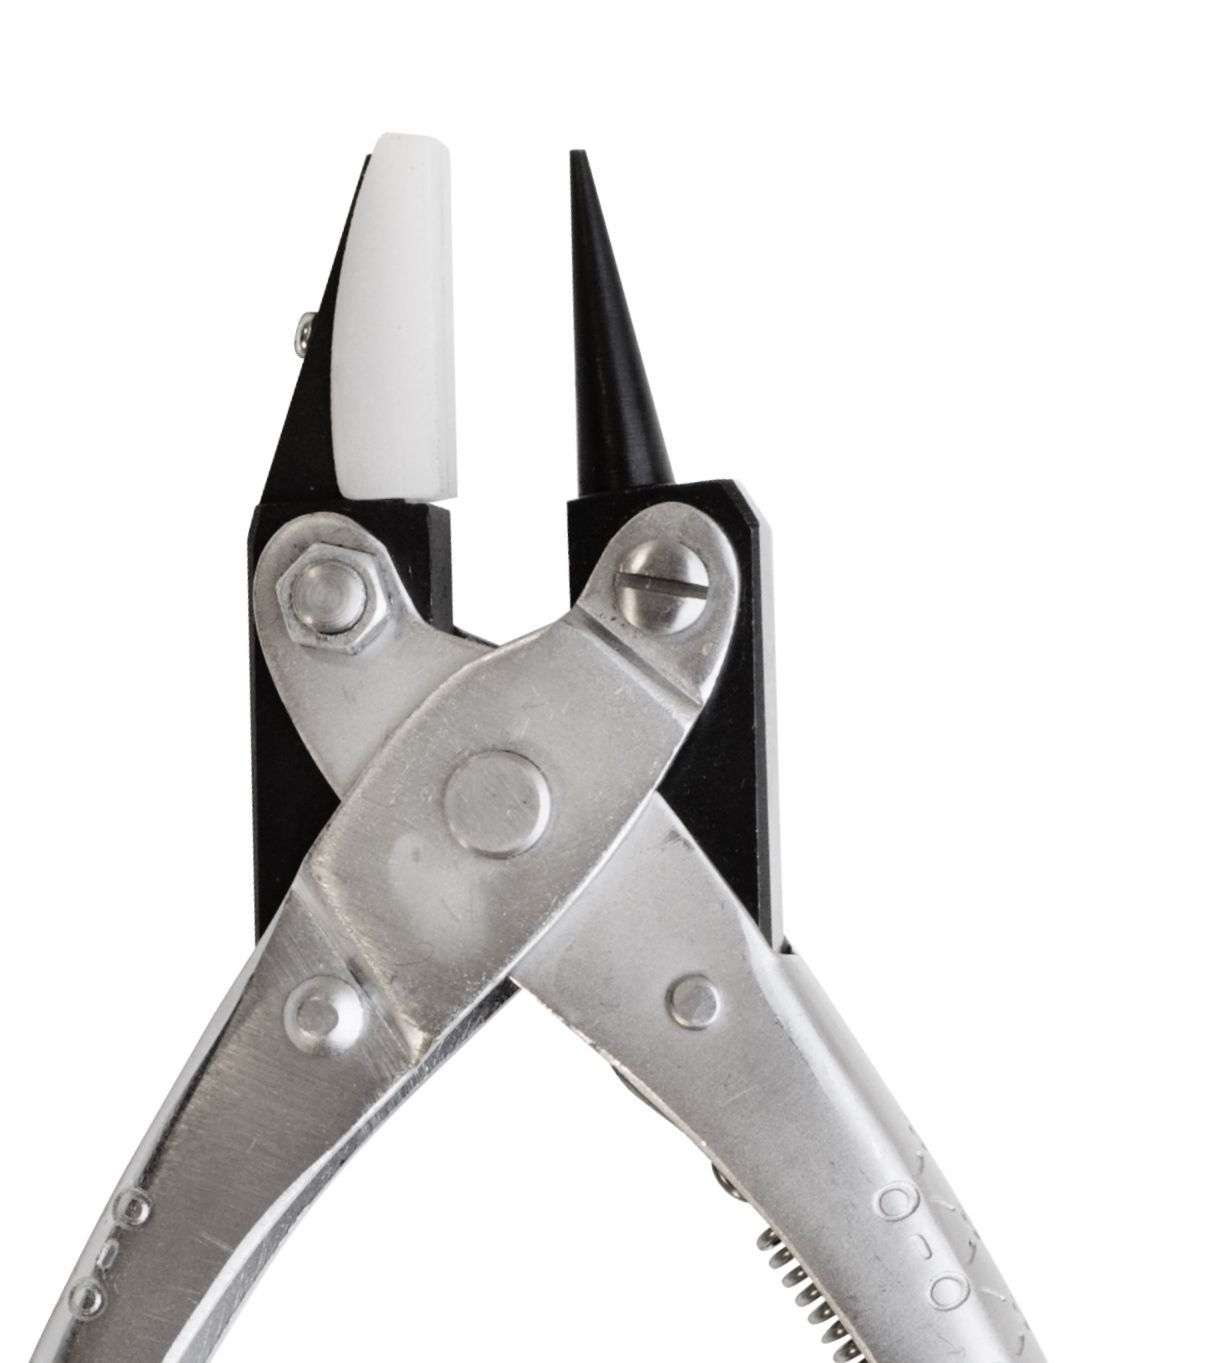 PARALLEL ACTION PLIERS ROUND & FLAT NYLON JAW NOSE PLIER 140mm JEWELRY WIRE WORK (6E) NOVELTOOLS